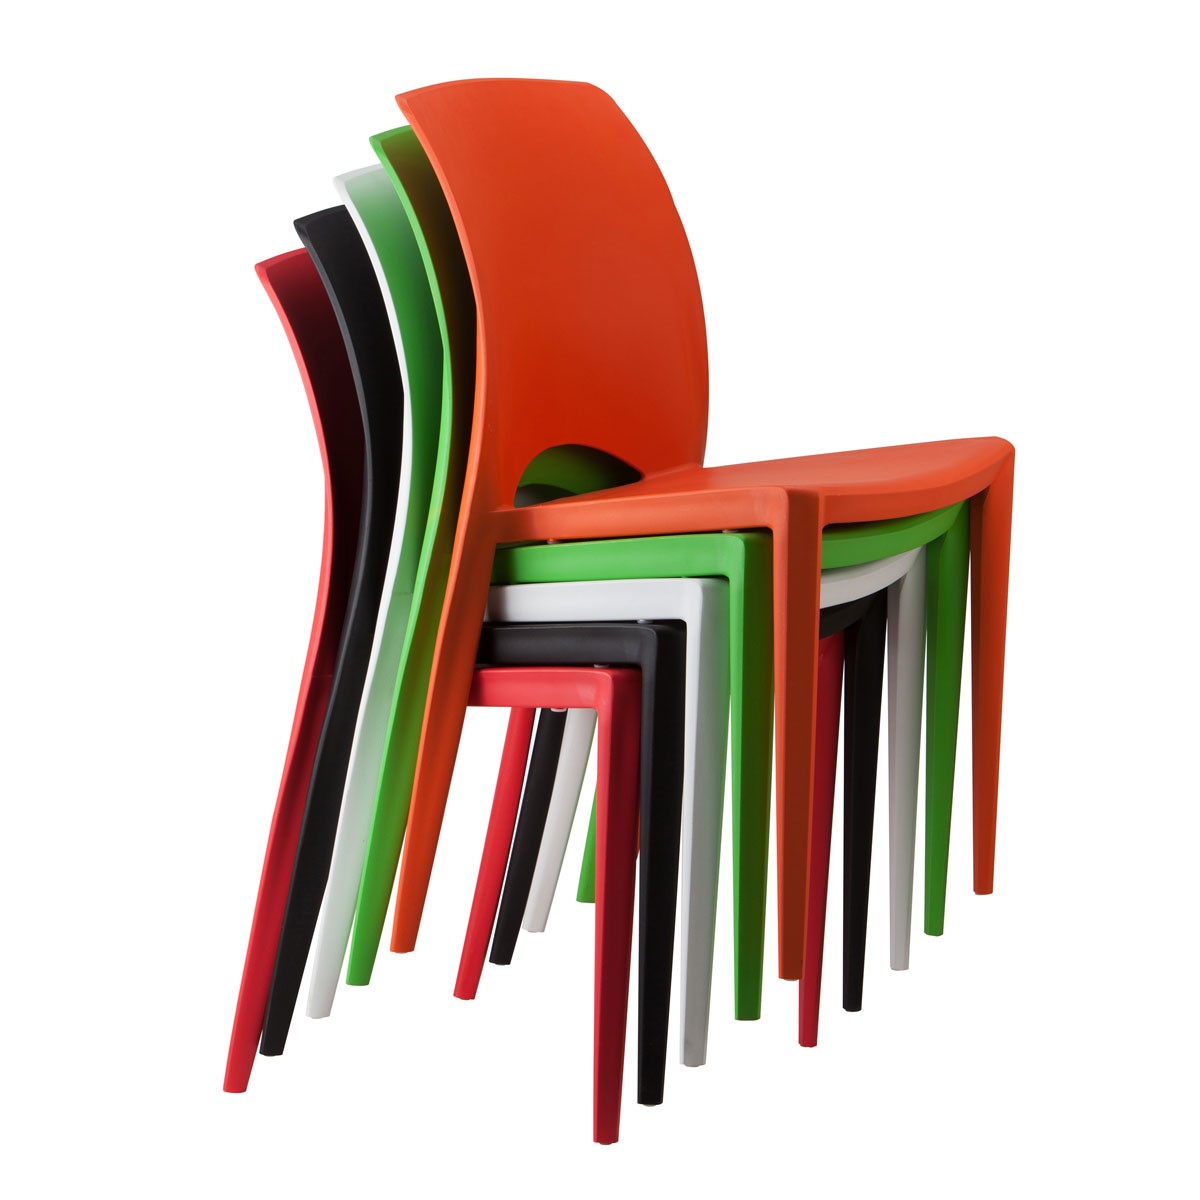 Molded Plastic Chair in Red - (YMG-9908-3)